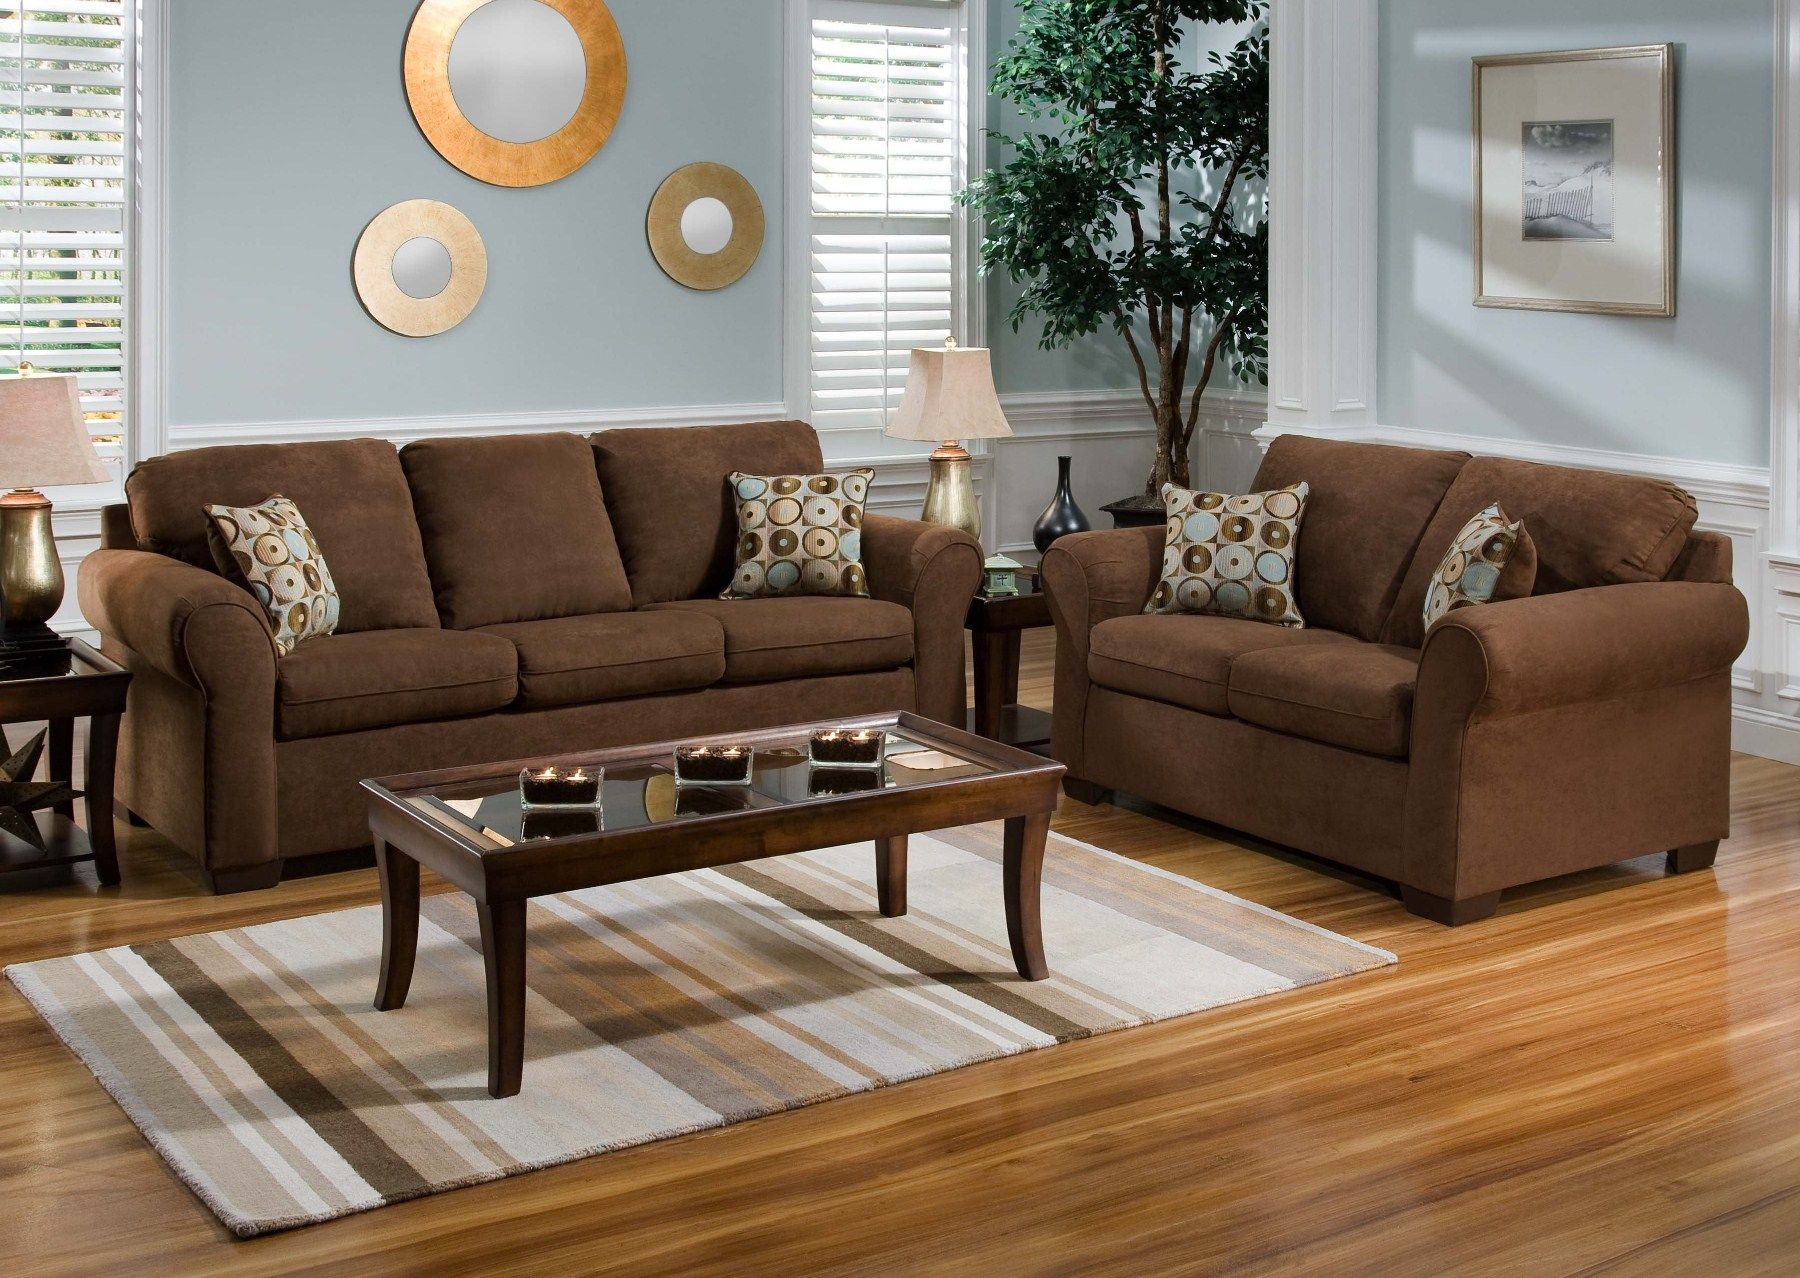 17 best images about living room with brown coach on living room color schemes brown couch